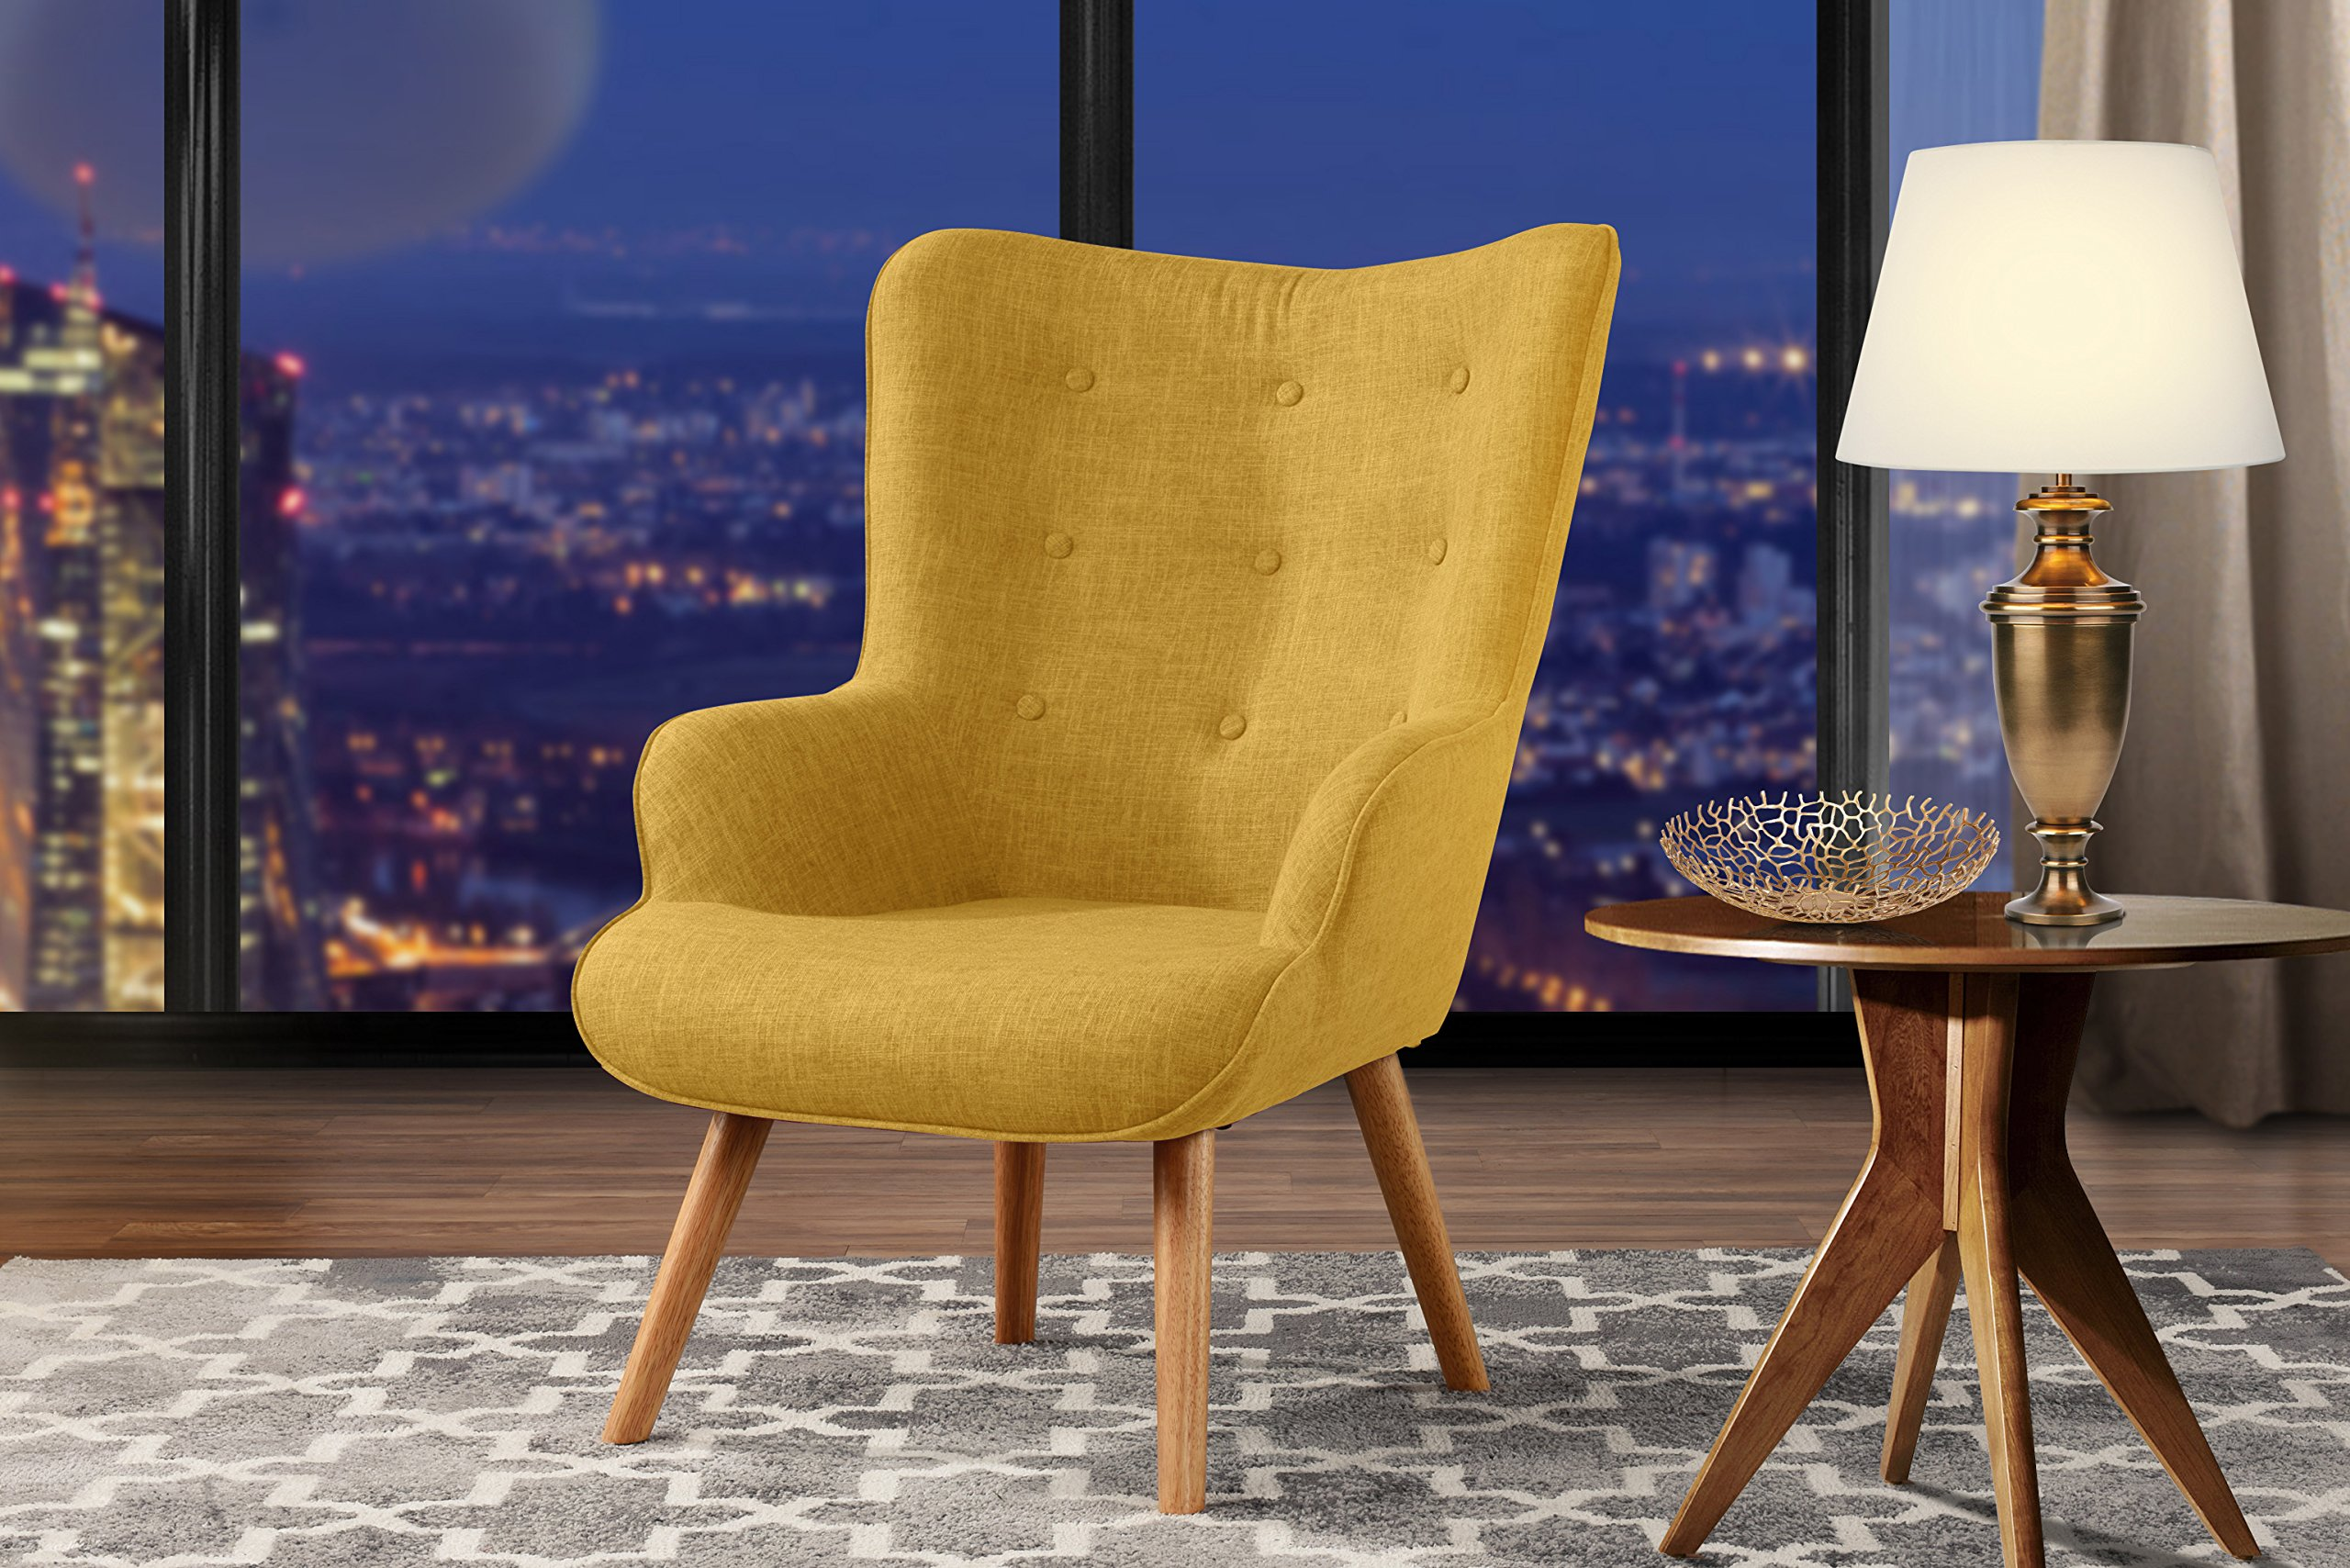 Accent Chair for Living Room, Upholstered Linen Arm Chairs with Tufted Button Detailing and Natural Wooden Legs (Yellow) - Divano Roma Furniture launches its new classic style accent chair upholstered with linen fabric that includes tufted button detailing on the backrest. Comfortable and sturdy, this chairs comes with high density memory foam cushions that have hypoallergenic stuffing, making them ideal for people who suffer from dust allergies. Available in blue, this stylish arm chair is a great addition to your living room, bed room, guest room and kid's room. - living-room-furniture, living-room, accent-chairs - 91jpATpVU9L -